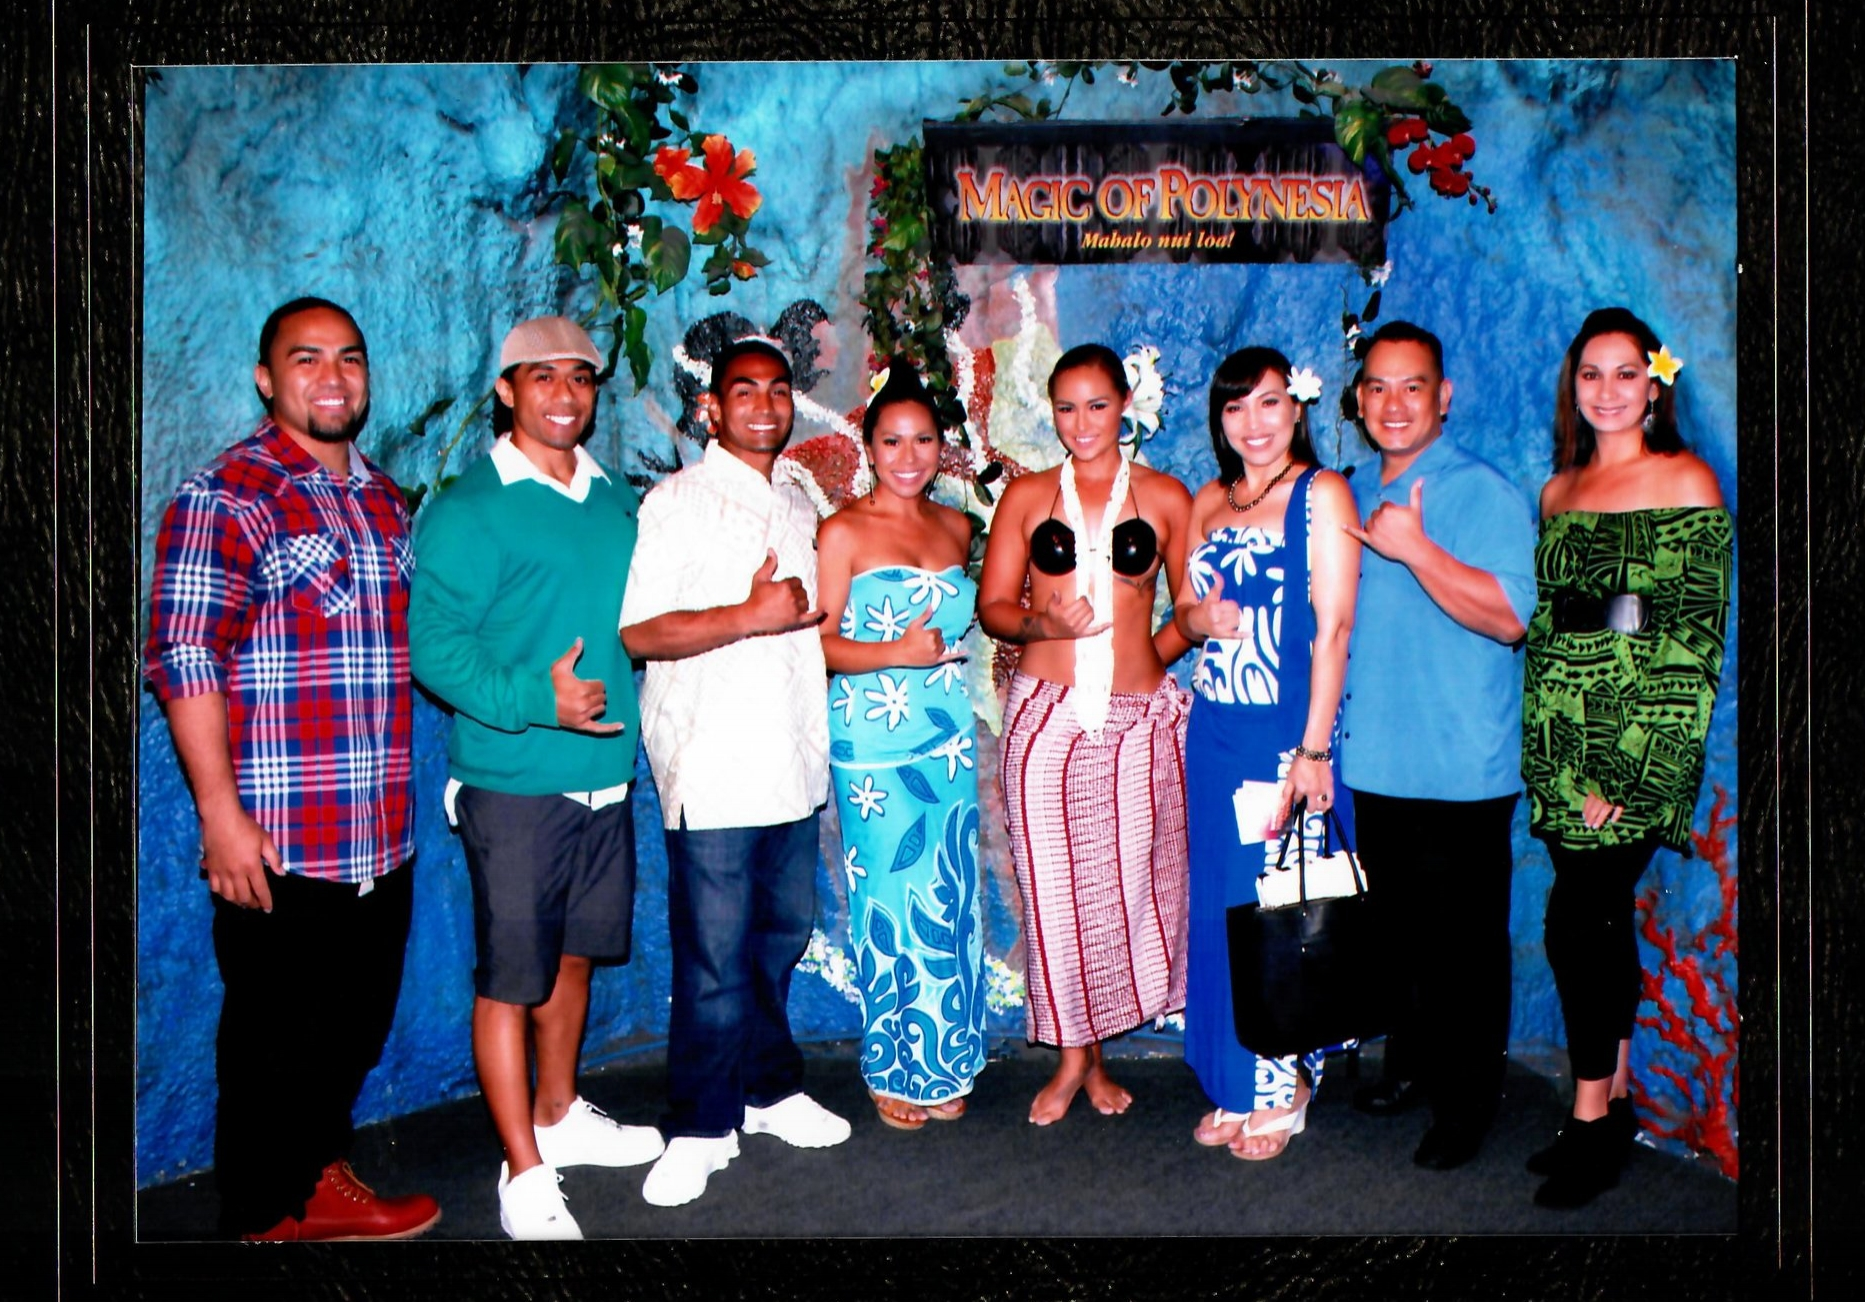 March 15, 2017 Our Performance Management Team's first night at the Magic of Polynesia show. We have lots of work to do there.